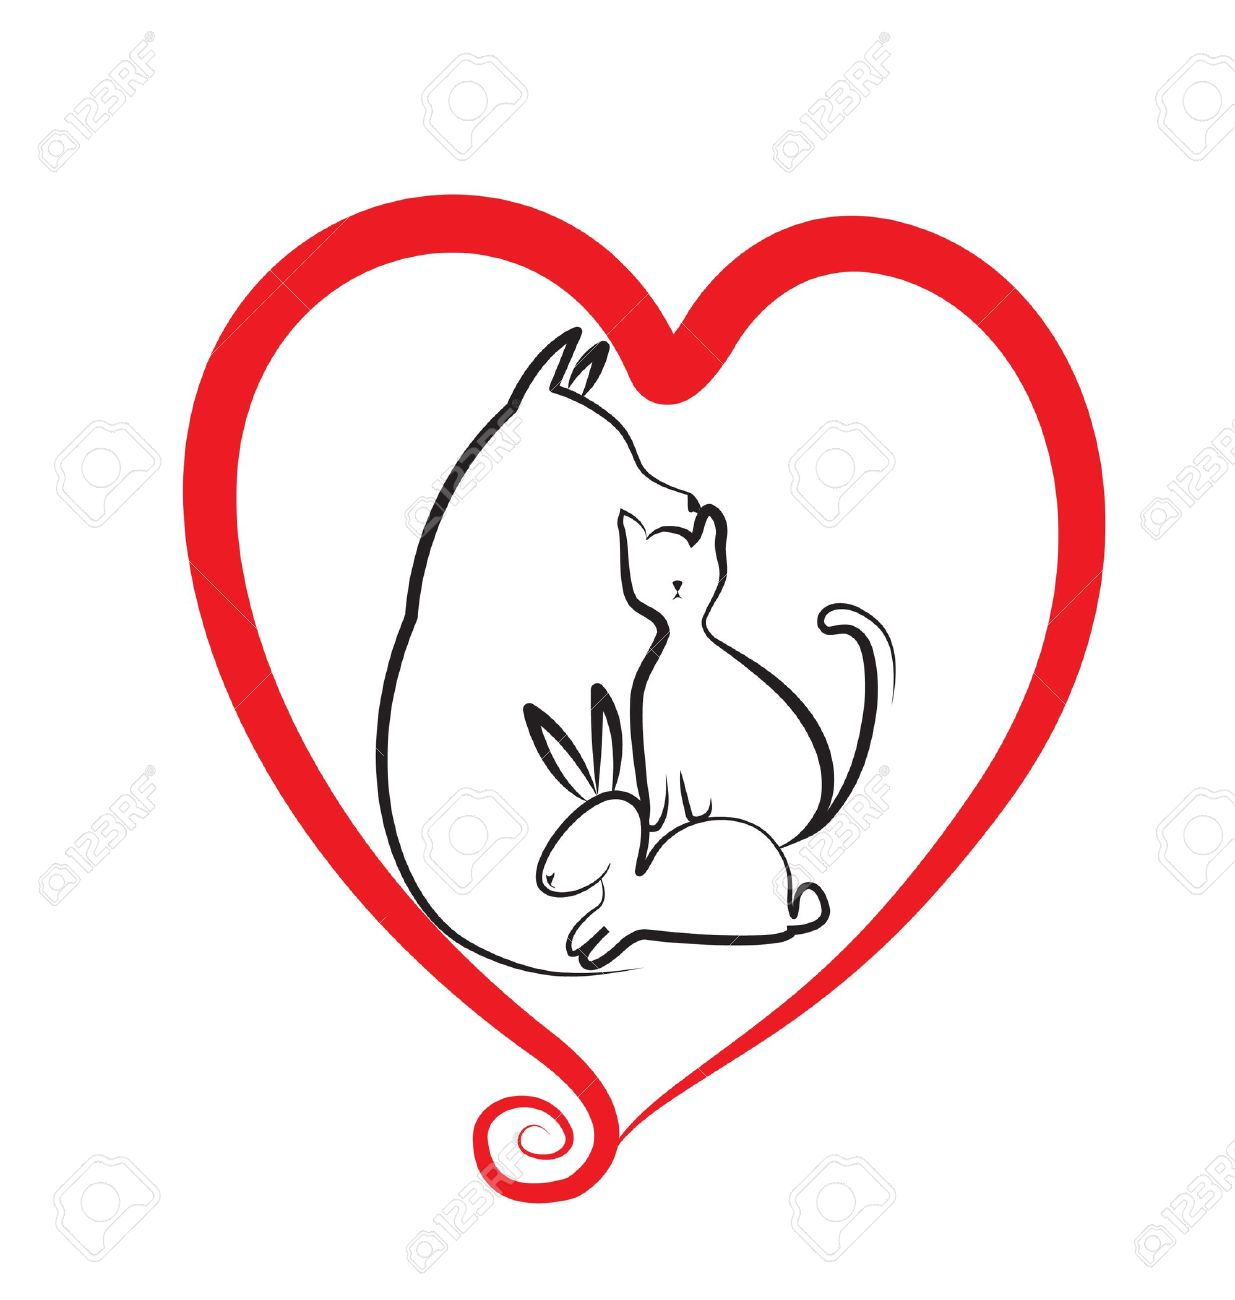 Pets and heart logo Stock Vector - 17280338